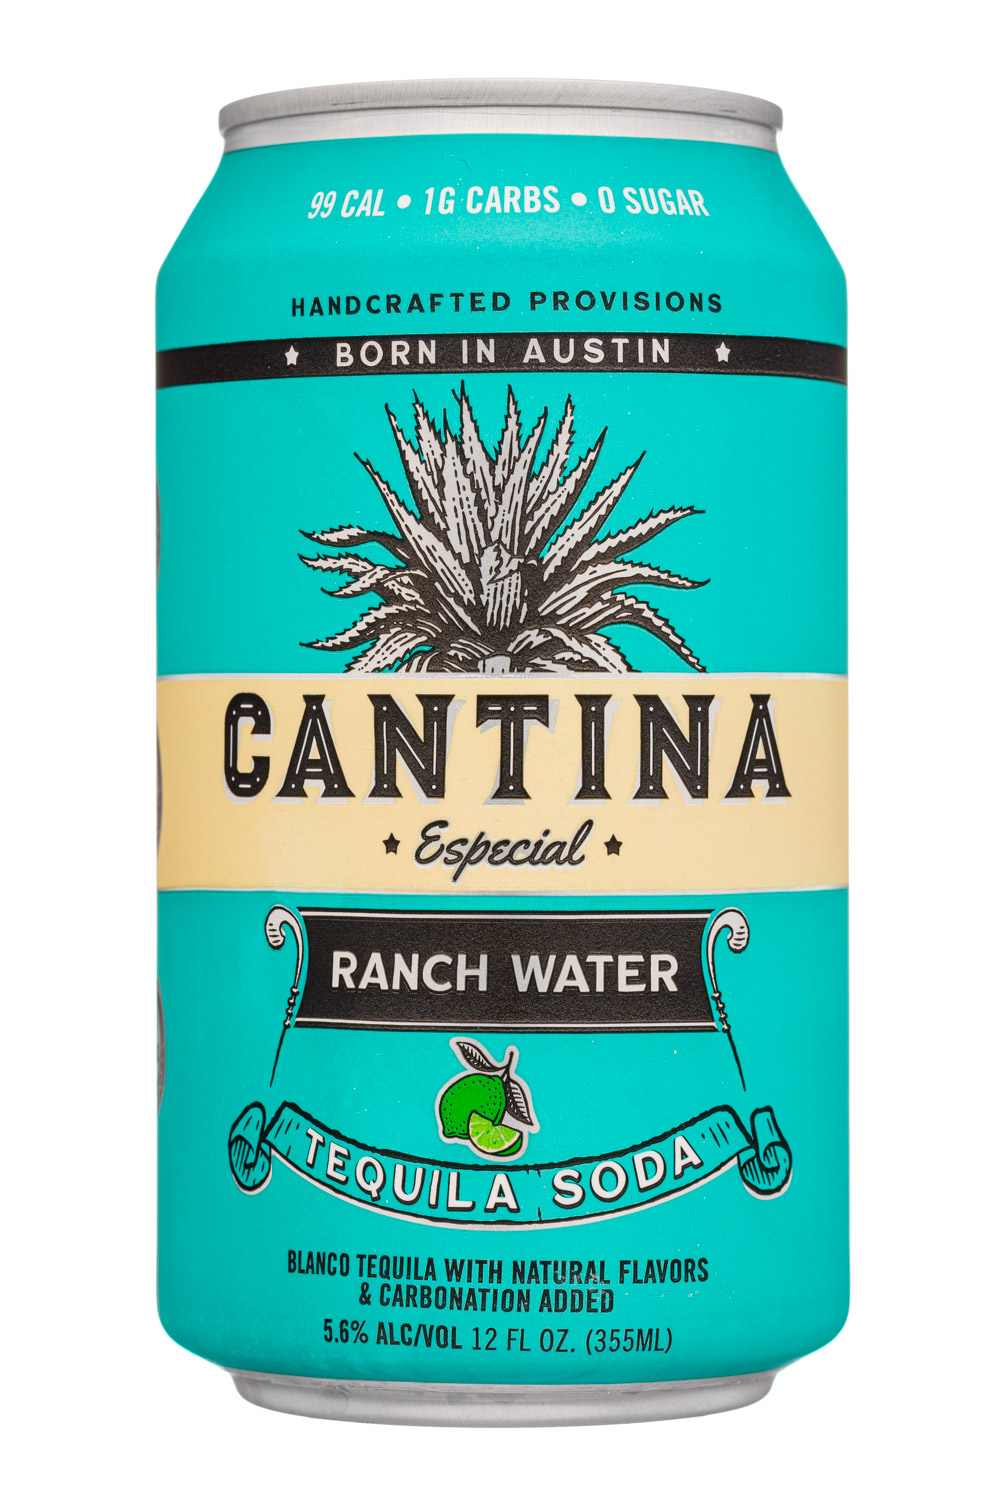 Cantina : CantinaEspecial-12oz-2021-TequilaSoda-RanchWater